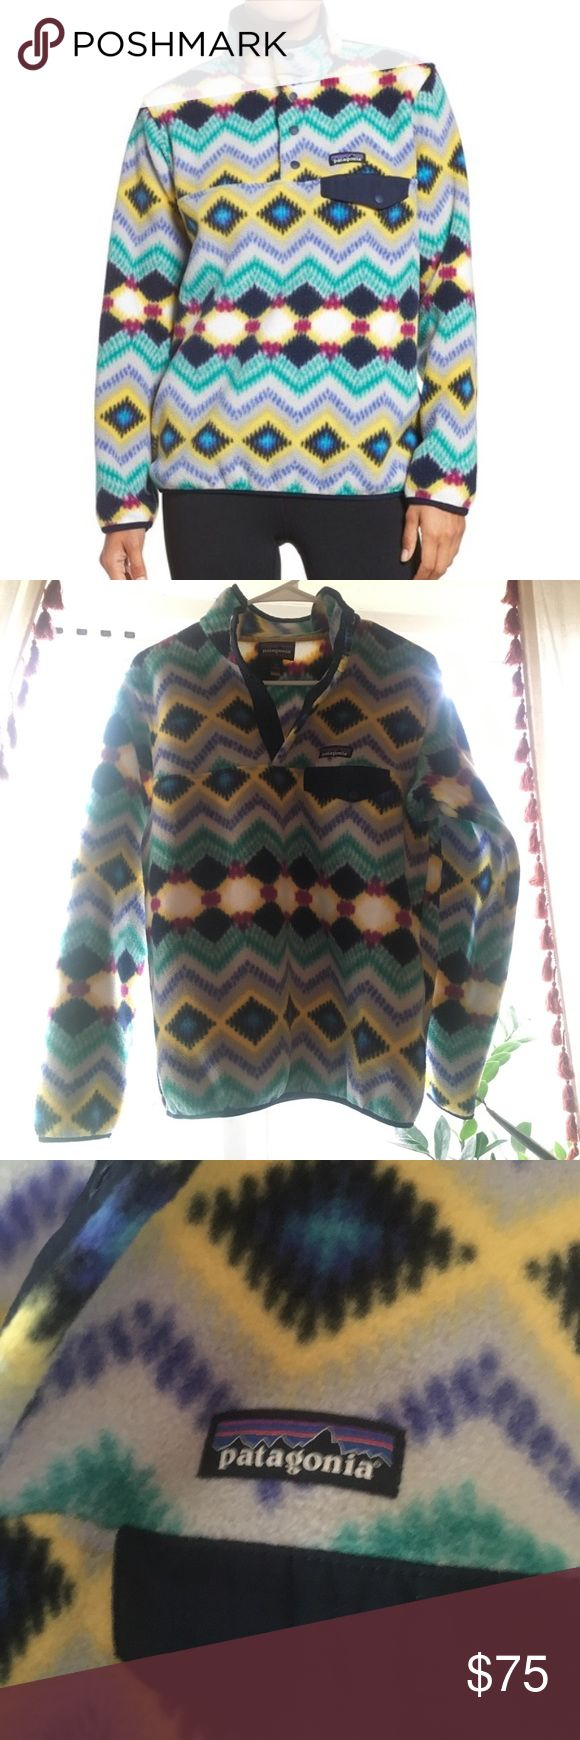 Patagonia synchilla fleece Patagonia synchilla fleece! Worn once, it's a little to small for me. Would be open to trading for a medium synchilla :) great condition—like new! Patagonia Sweaters